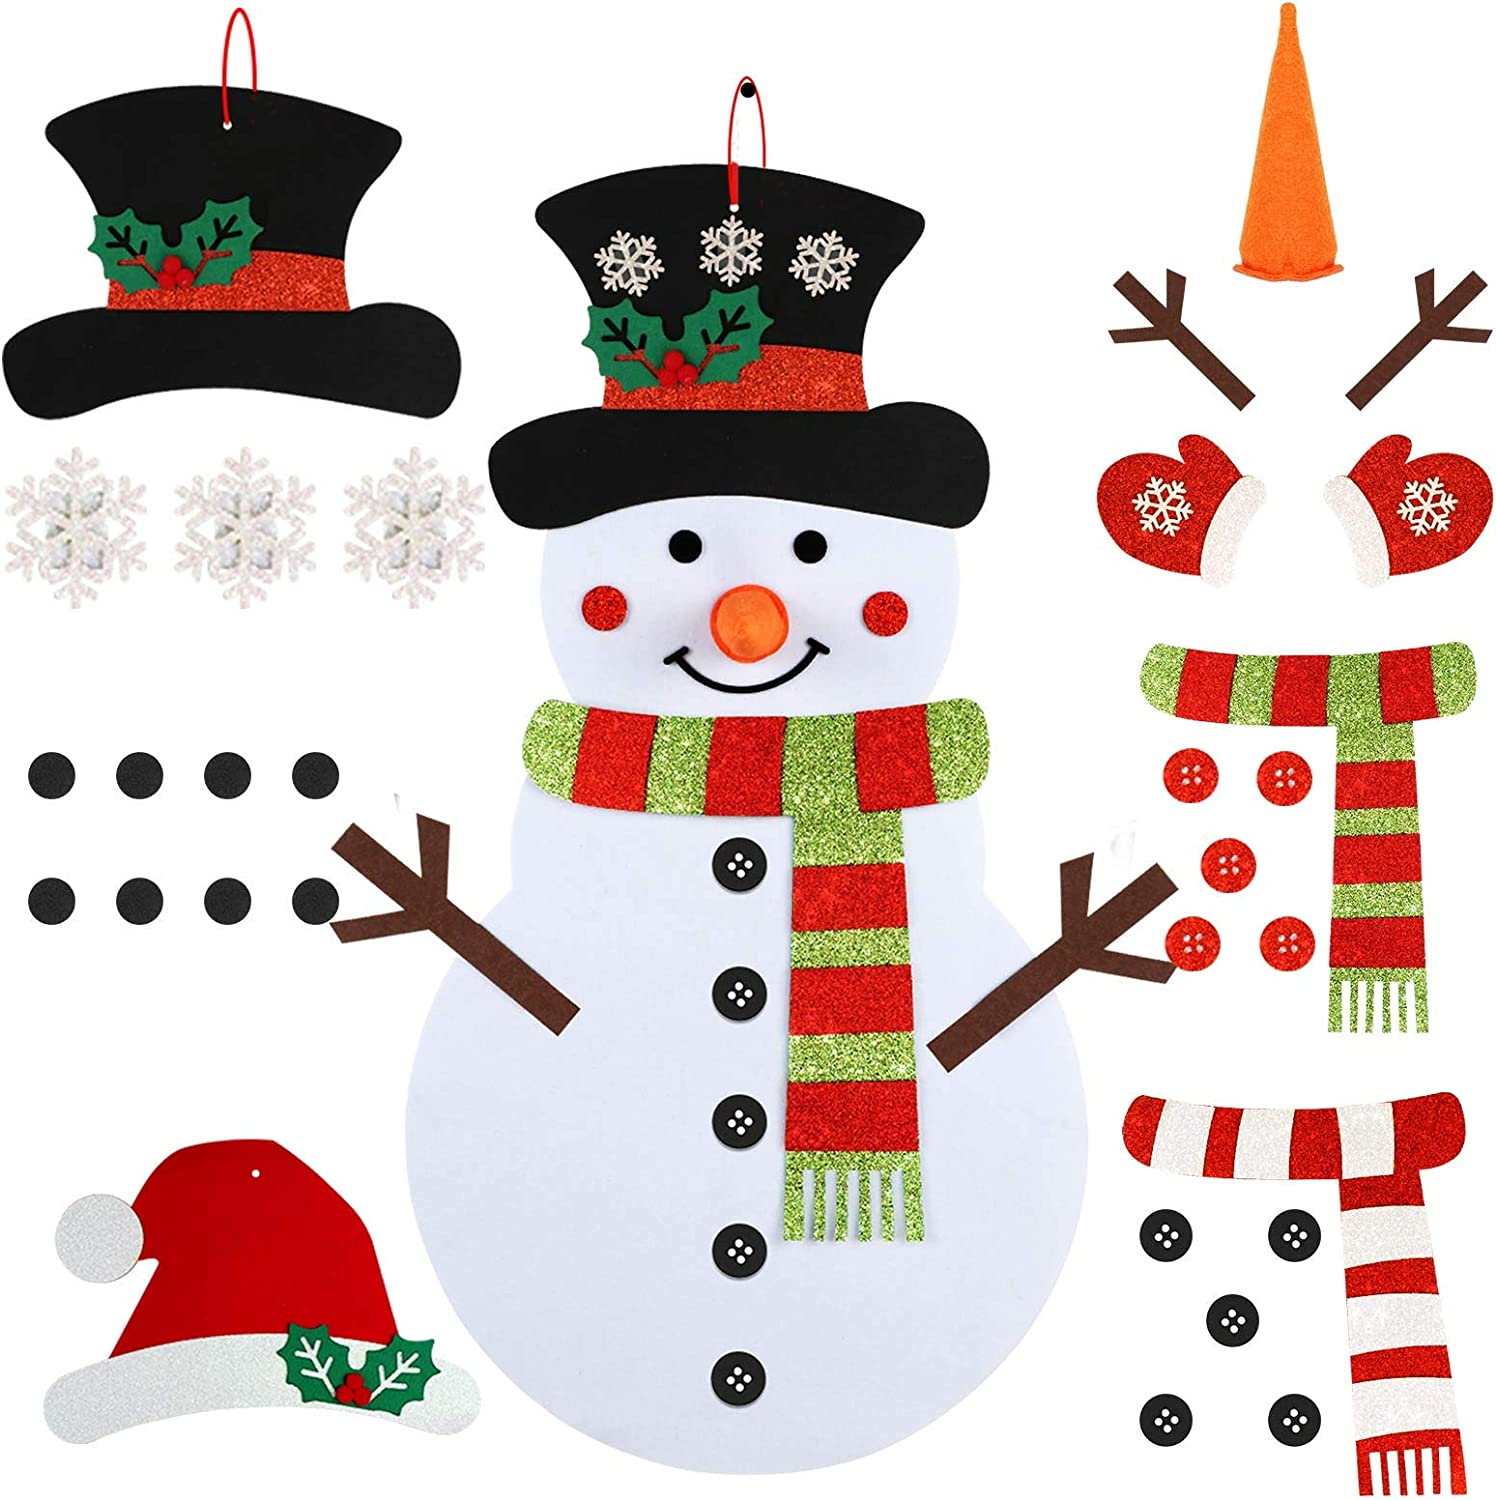 OurWarm DIY Felt Christmas Snowman Games Set for Kids,3.1Ft Double Sided Felt Snowman Games with 35pcs Glitter Detachable Ornaments for Toddles Xmas Gifts Christmas Door Wall Hanging Decorations